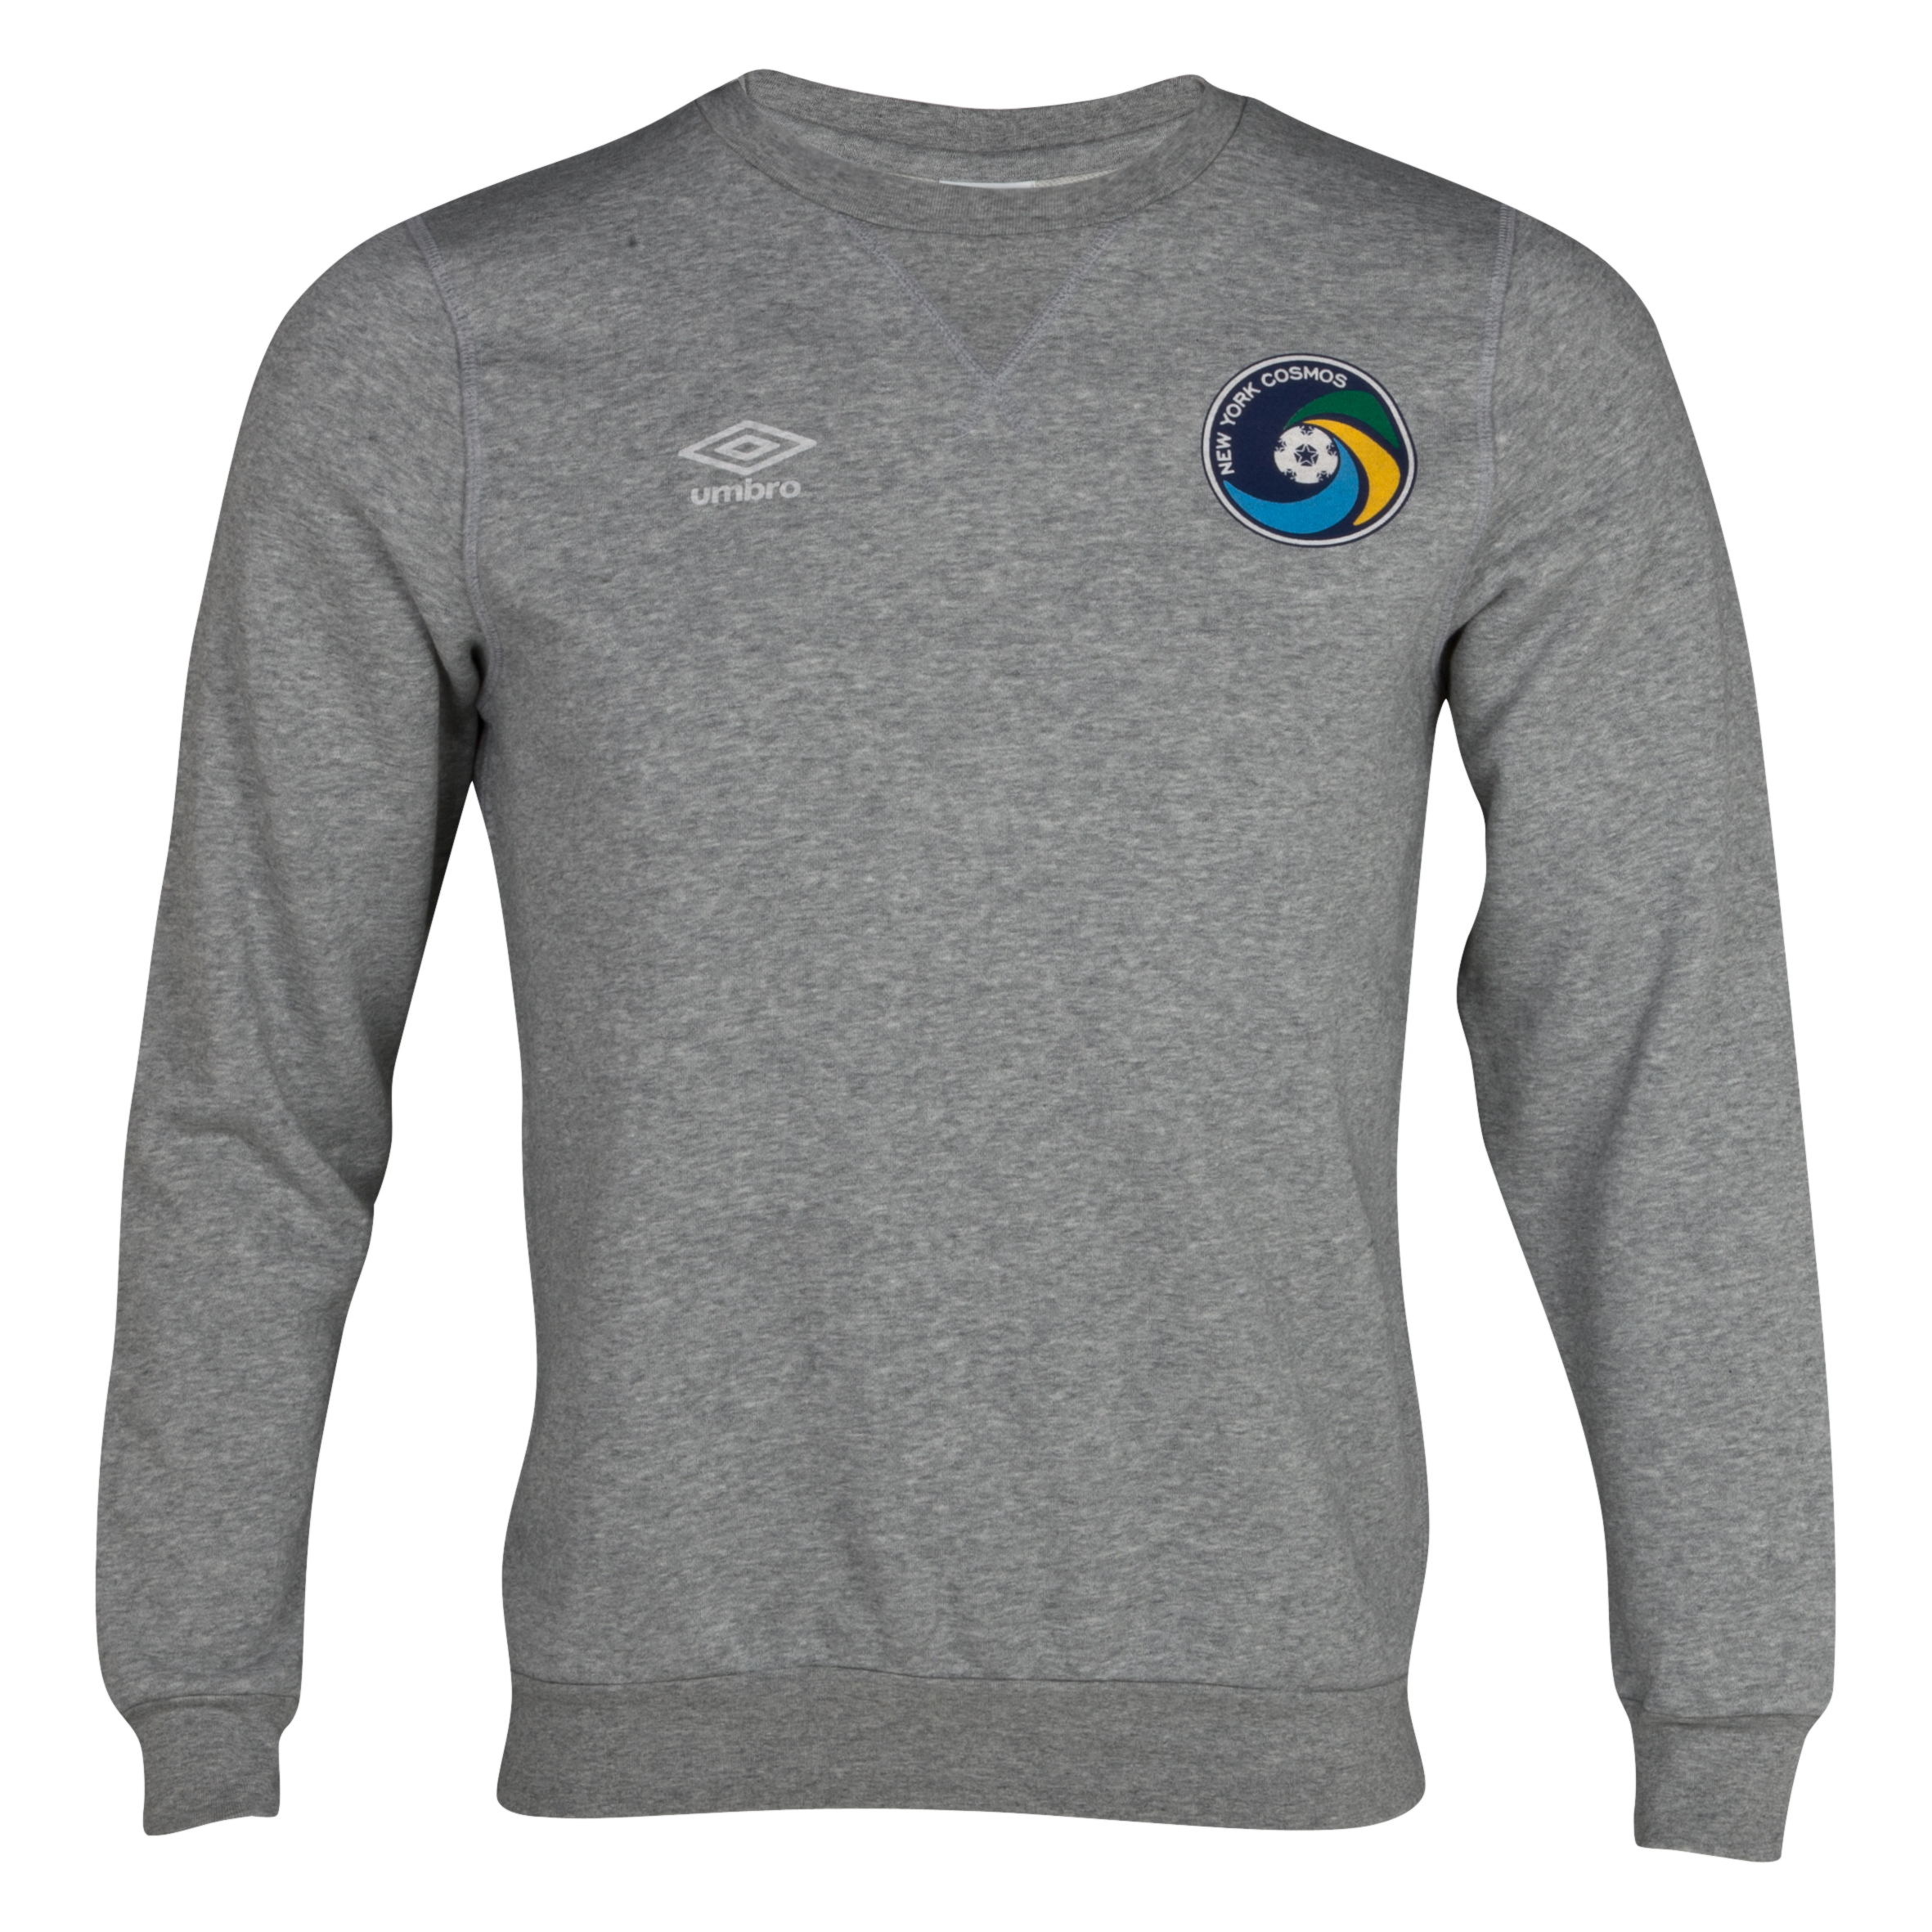 New York Cosmos Vintage Sweat Top - Grey Marl